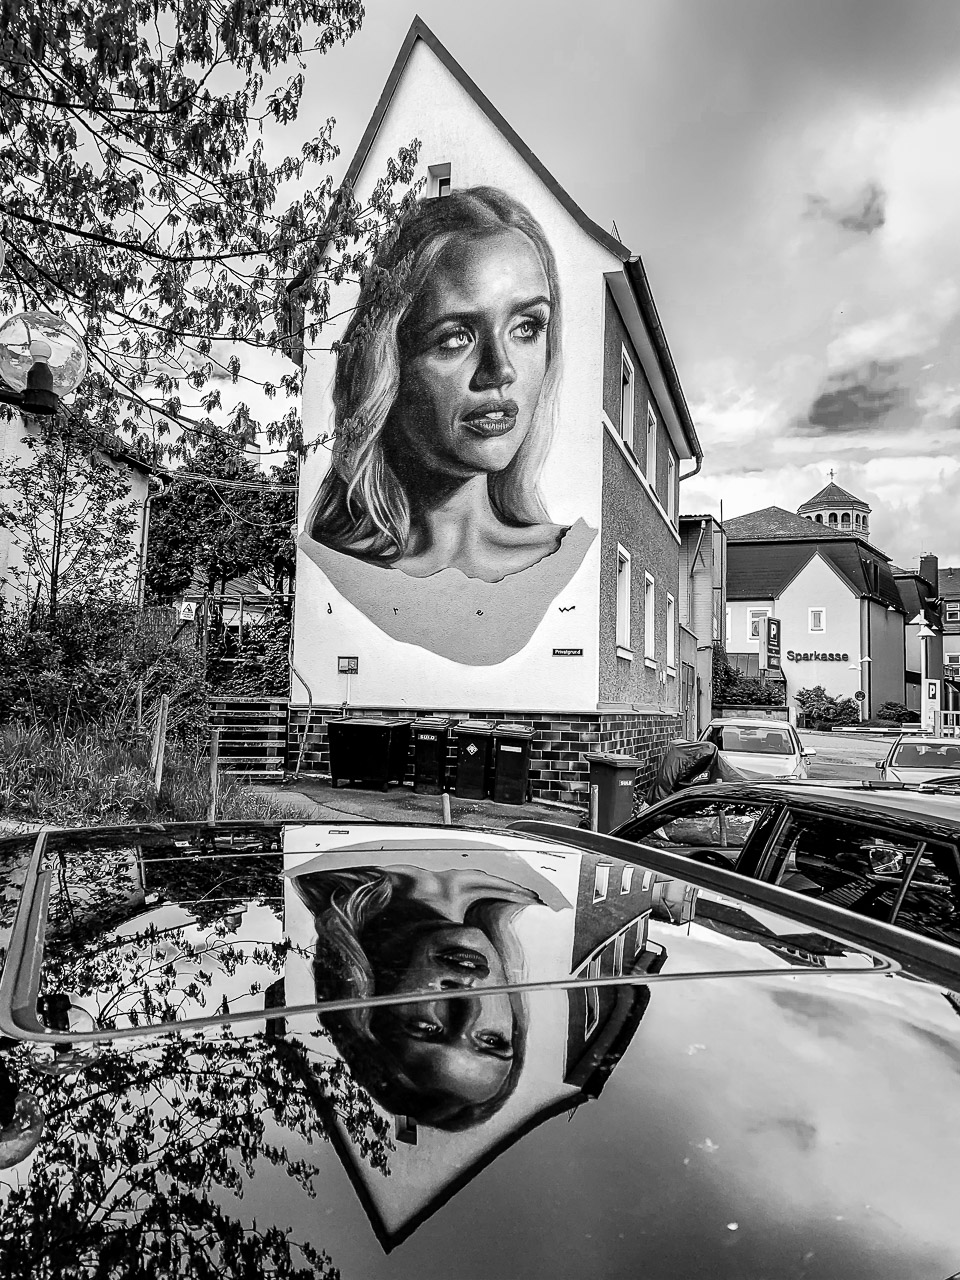 Mural with a woman's face with a reflection in a car roof